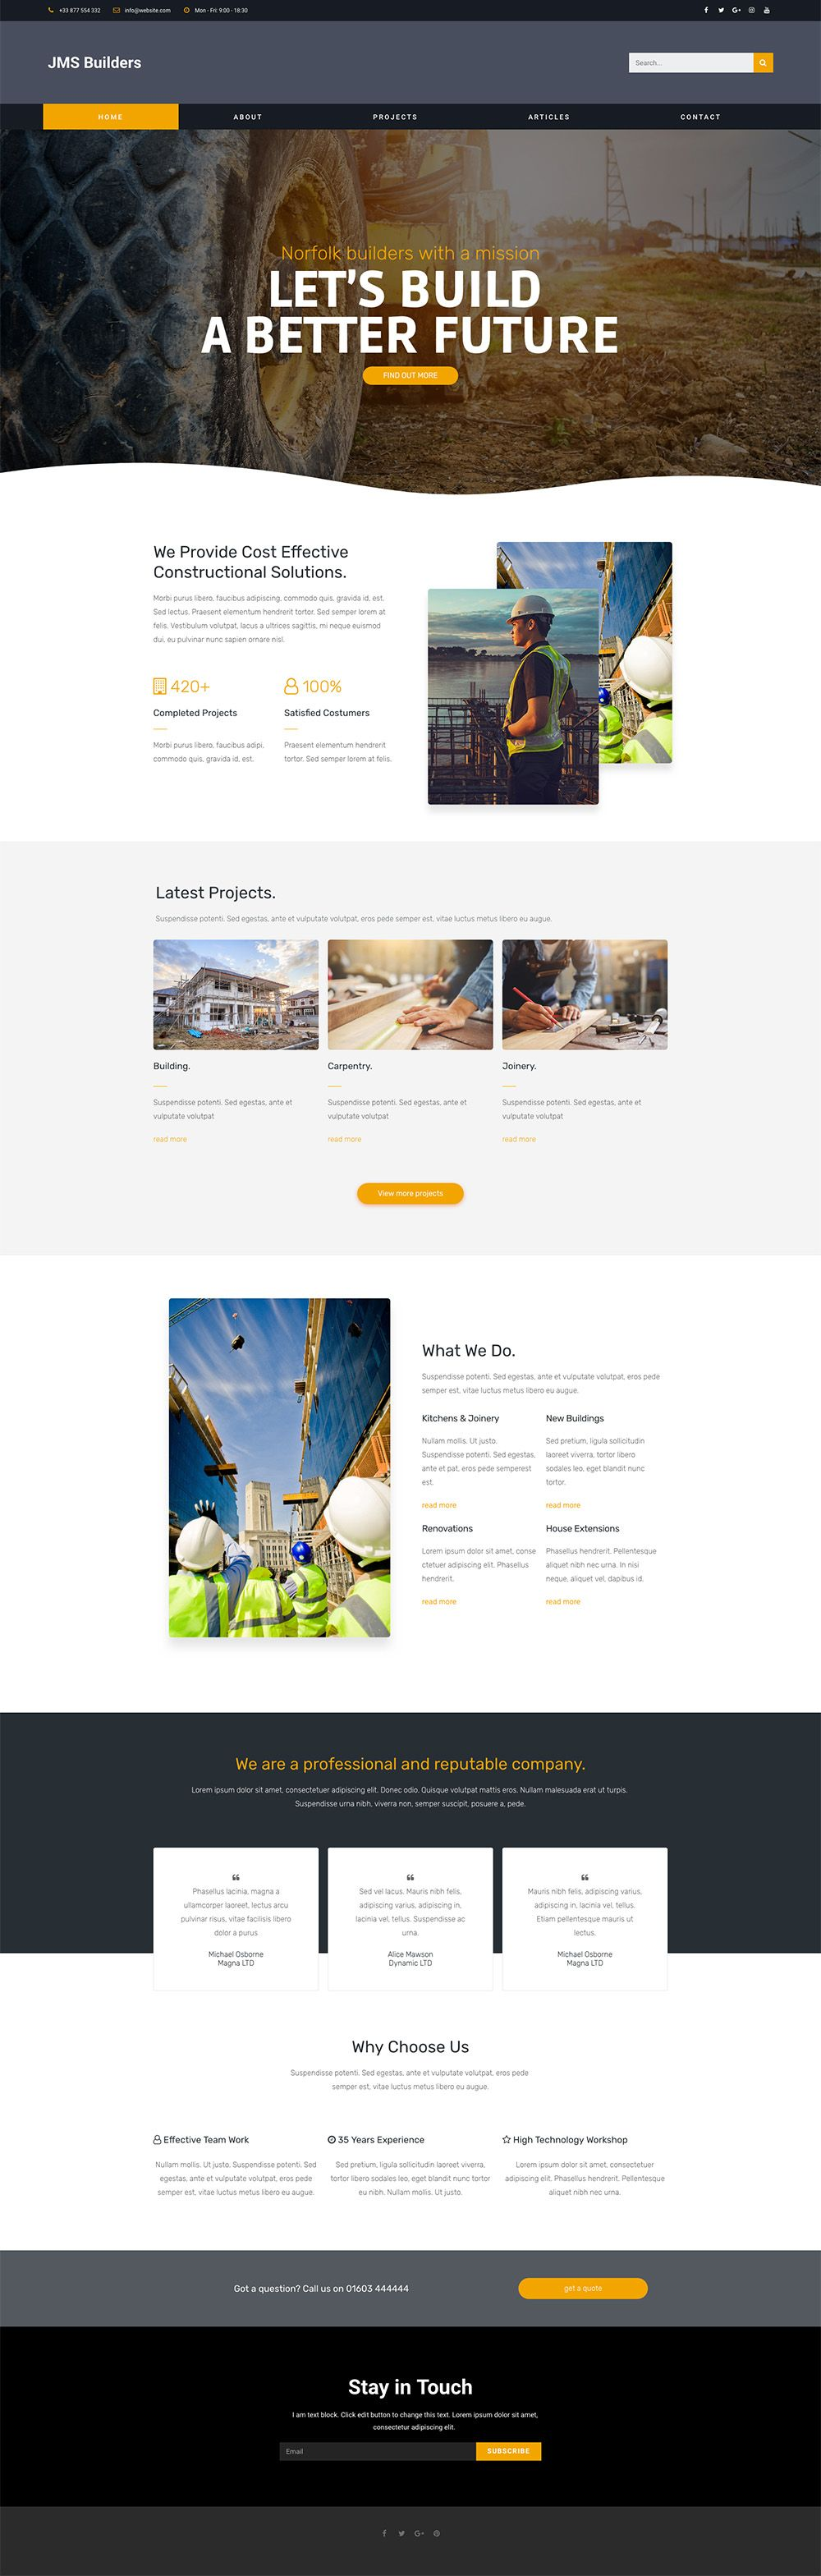 Web And App Design Local Builders Website Template Contact Me If You Want This As Your Builders Website Changed With Your Images And Your T Financas In Touch